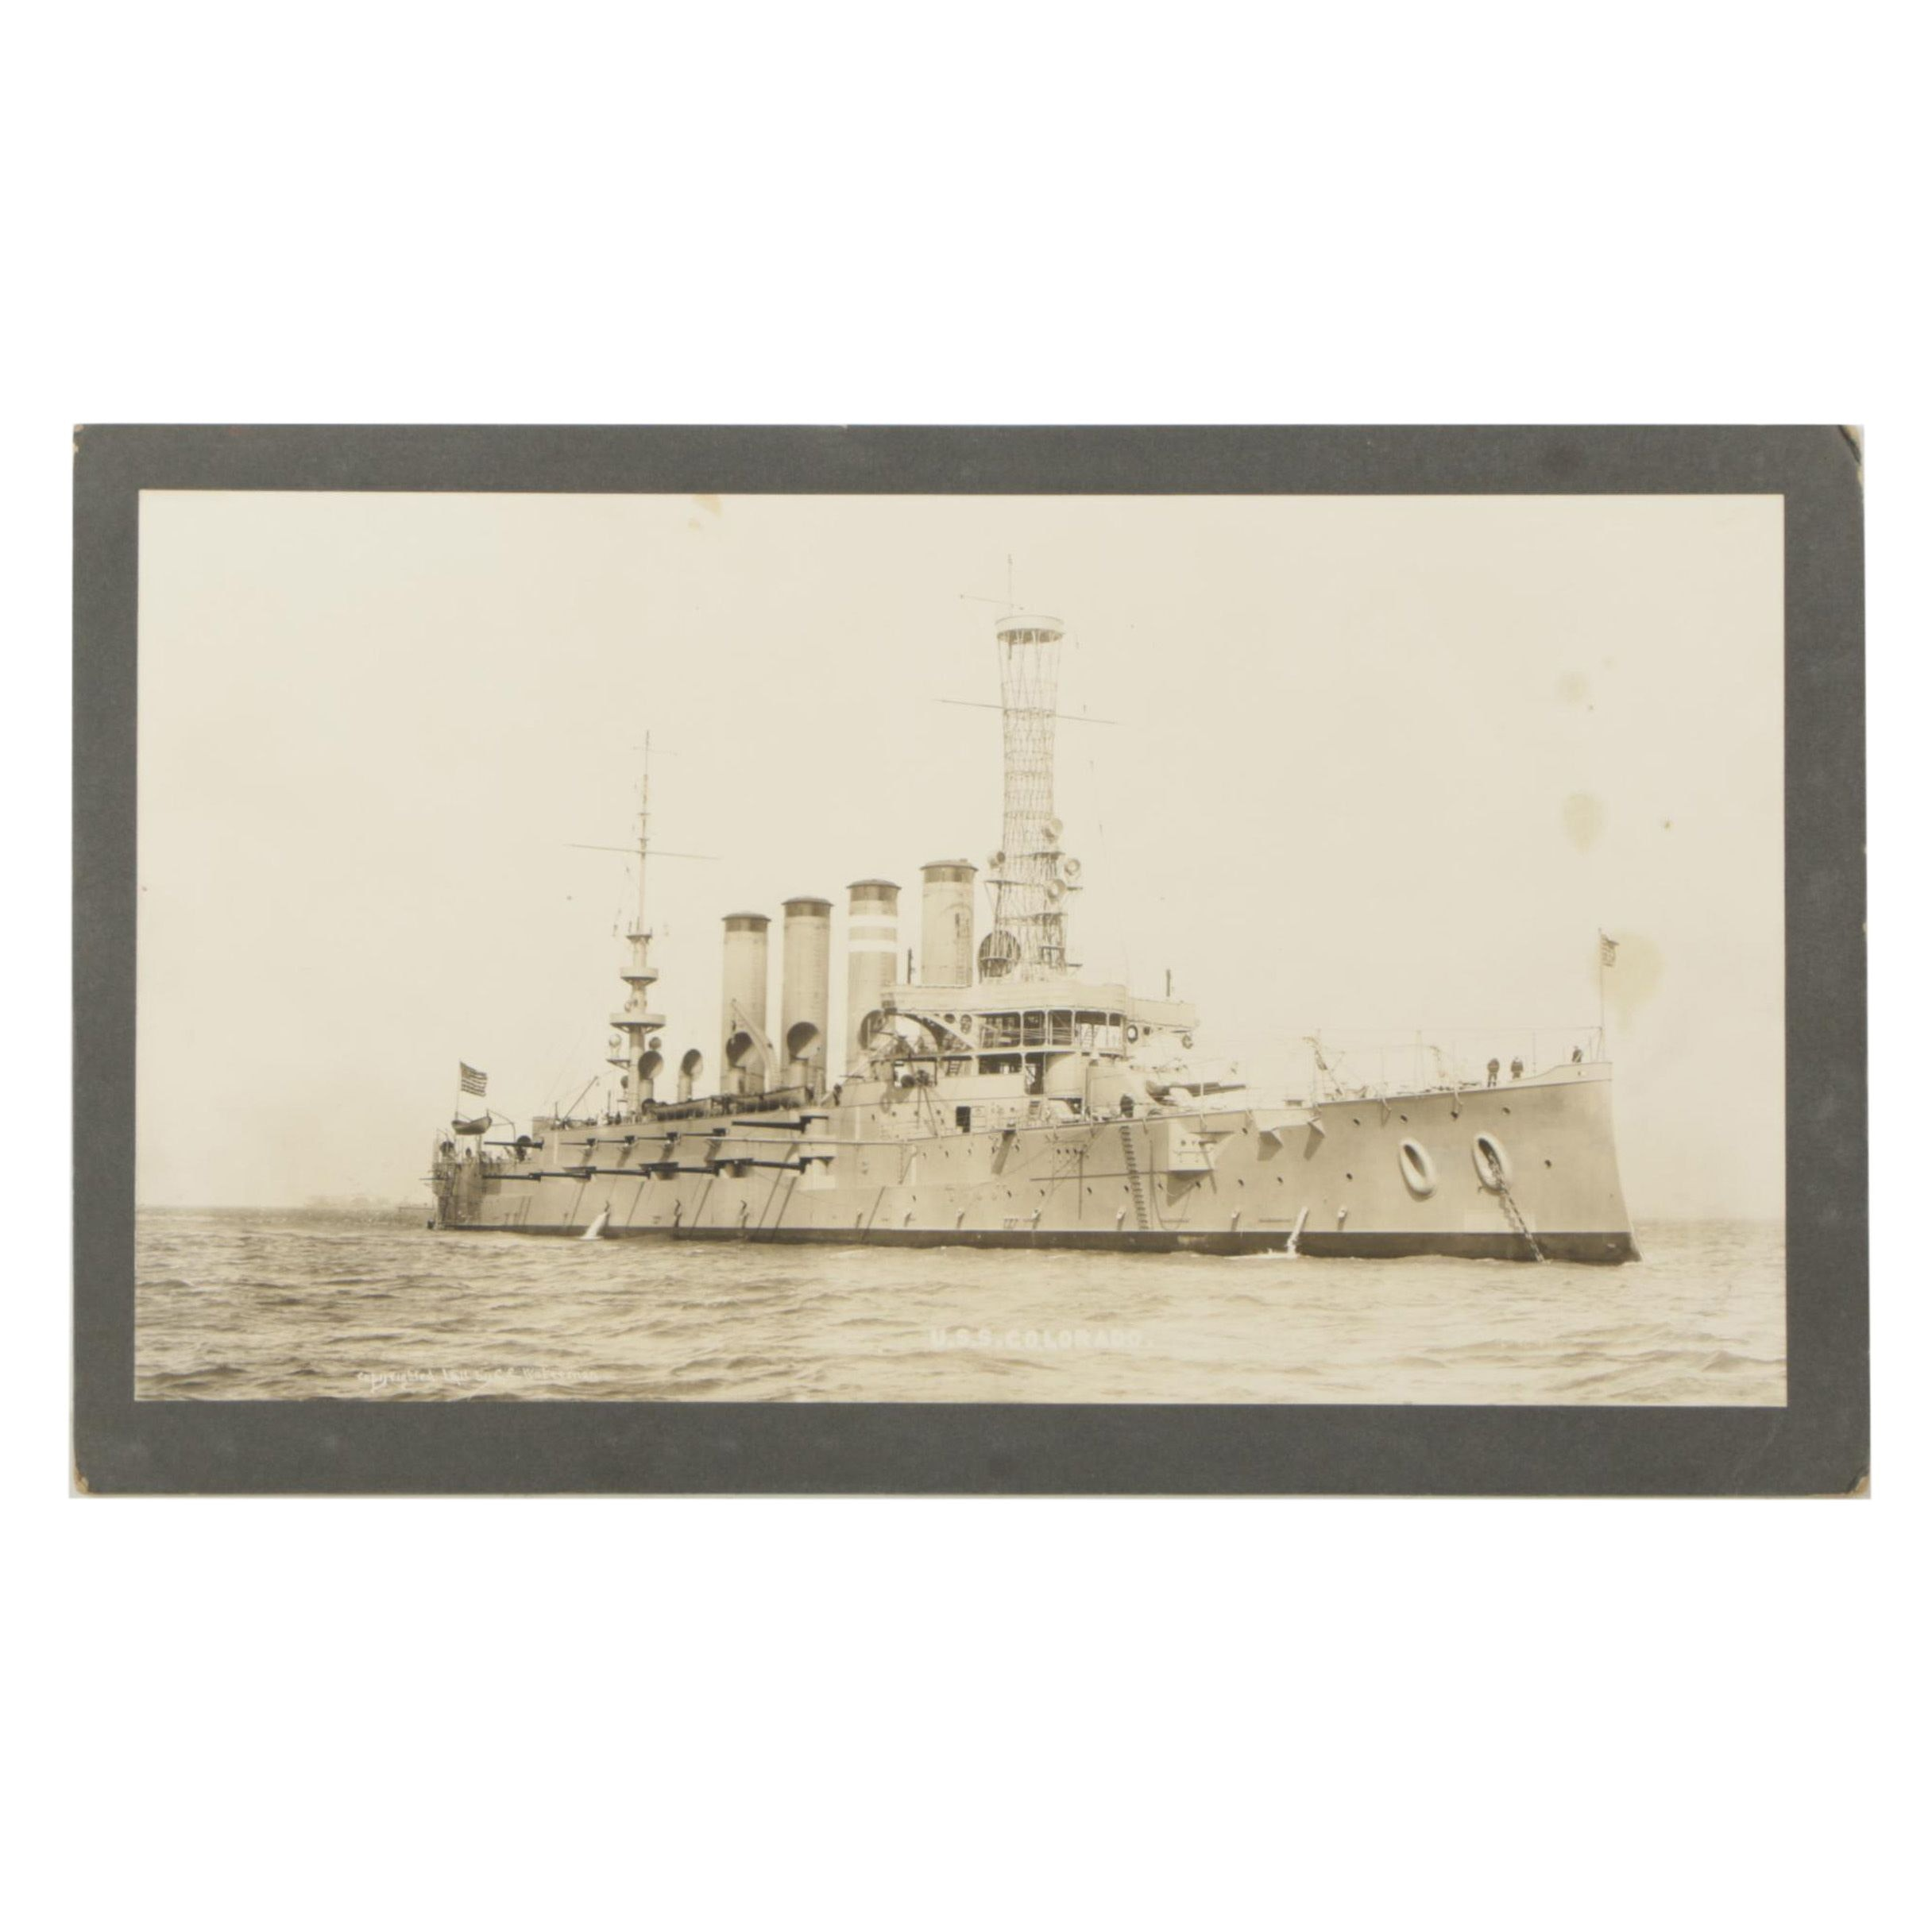 1911 Photograph After C.E. Waterman of U.S.S. Colorado Armored Cruiser